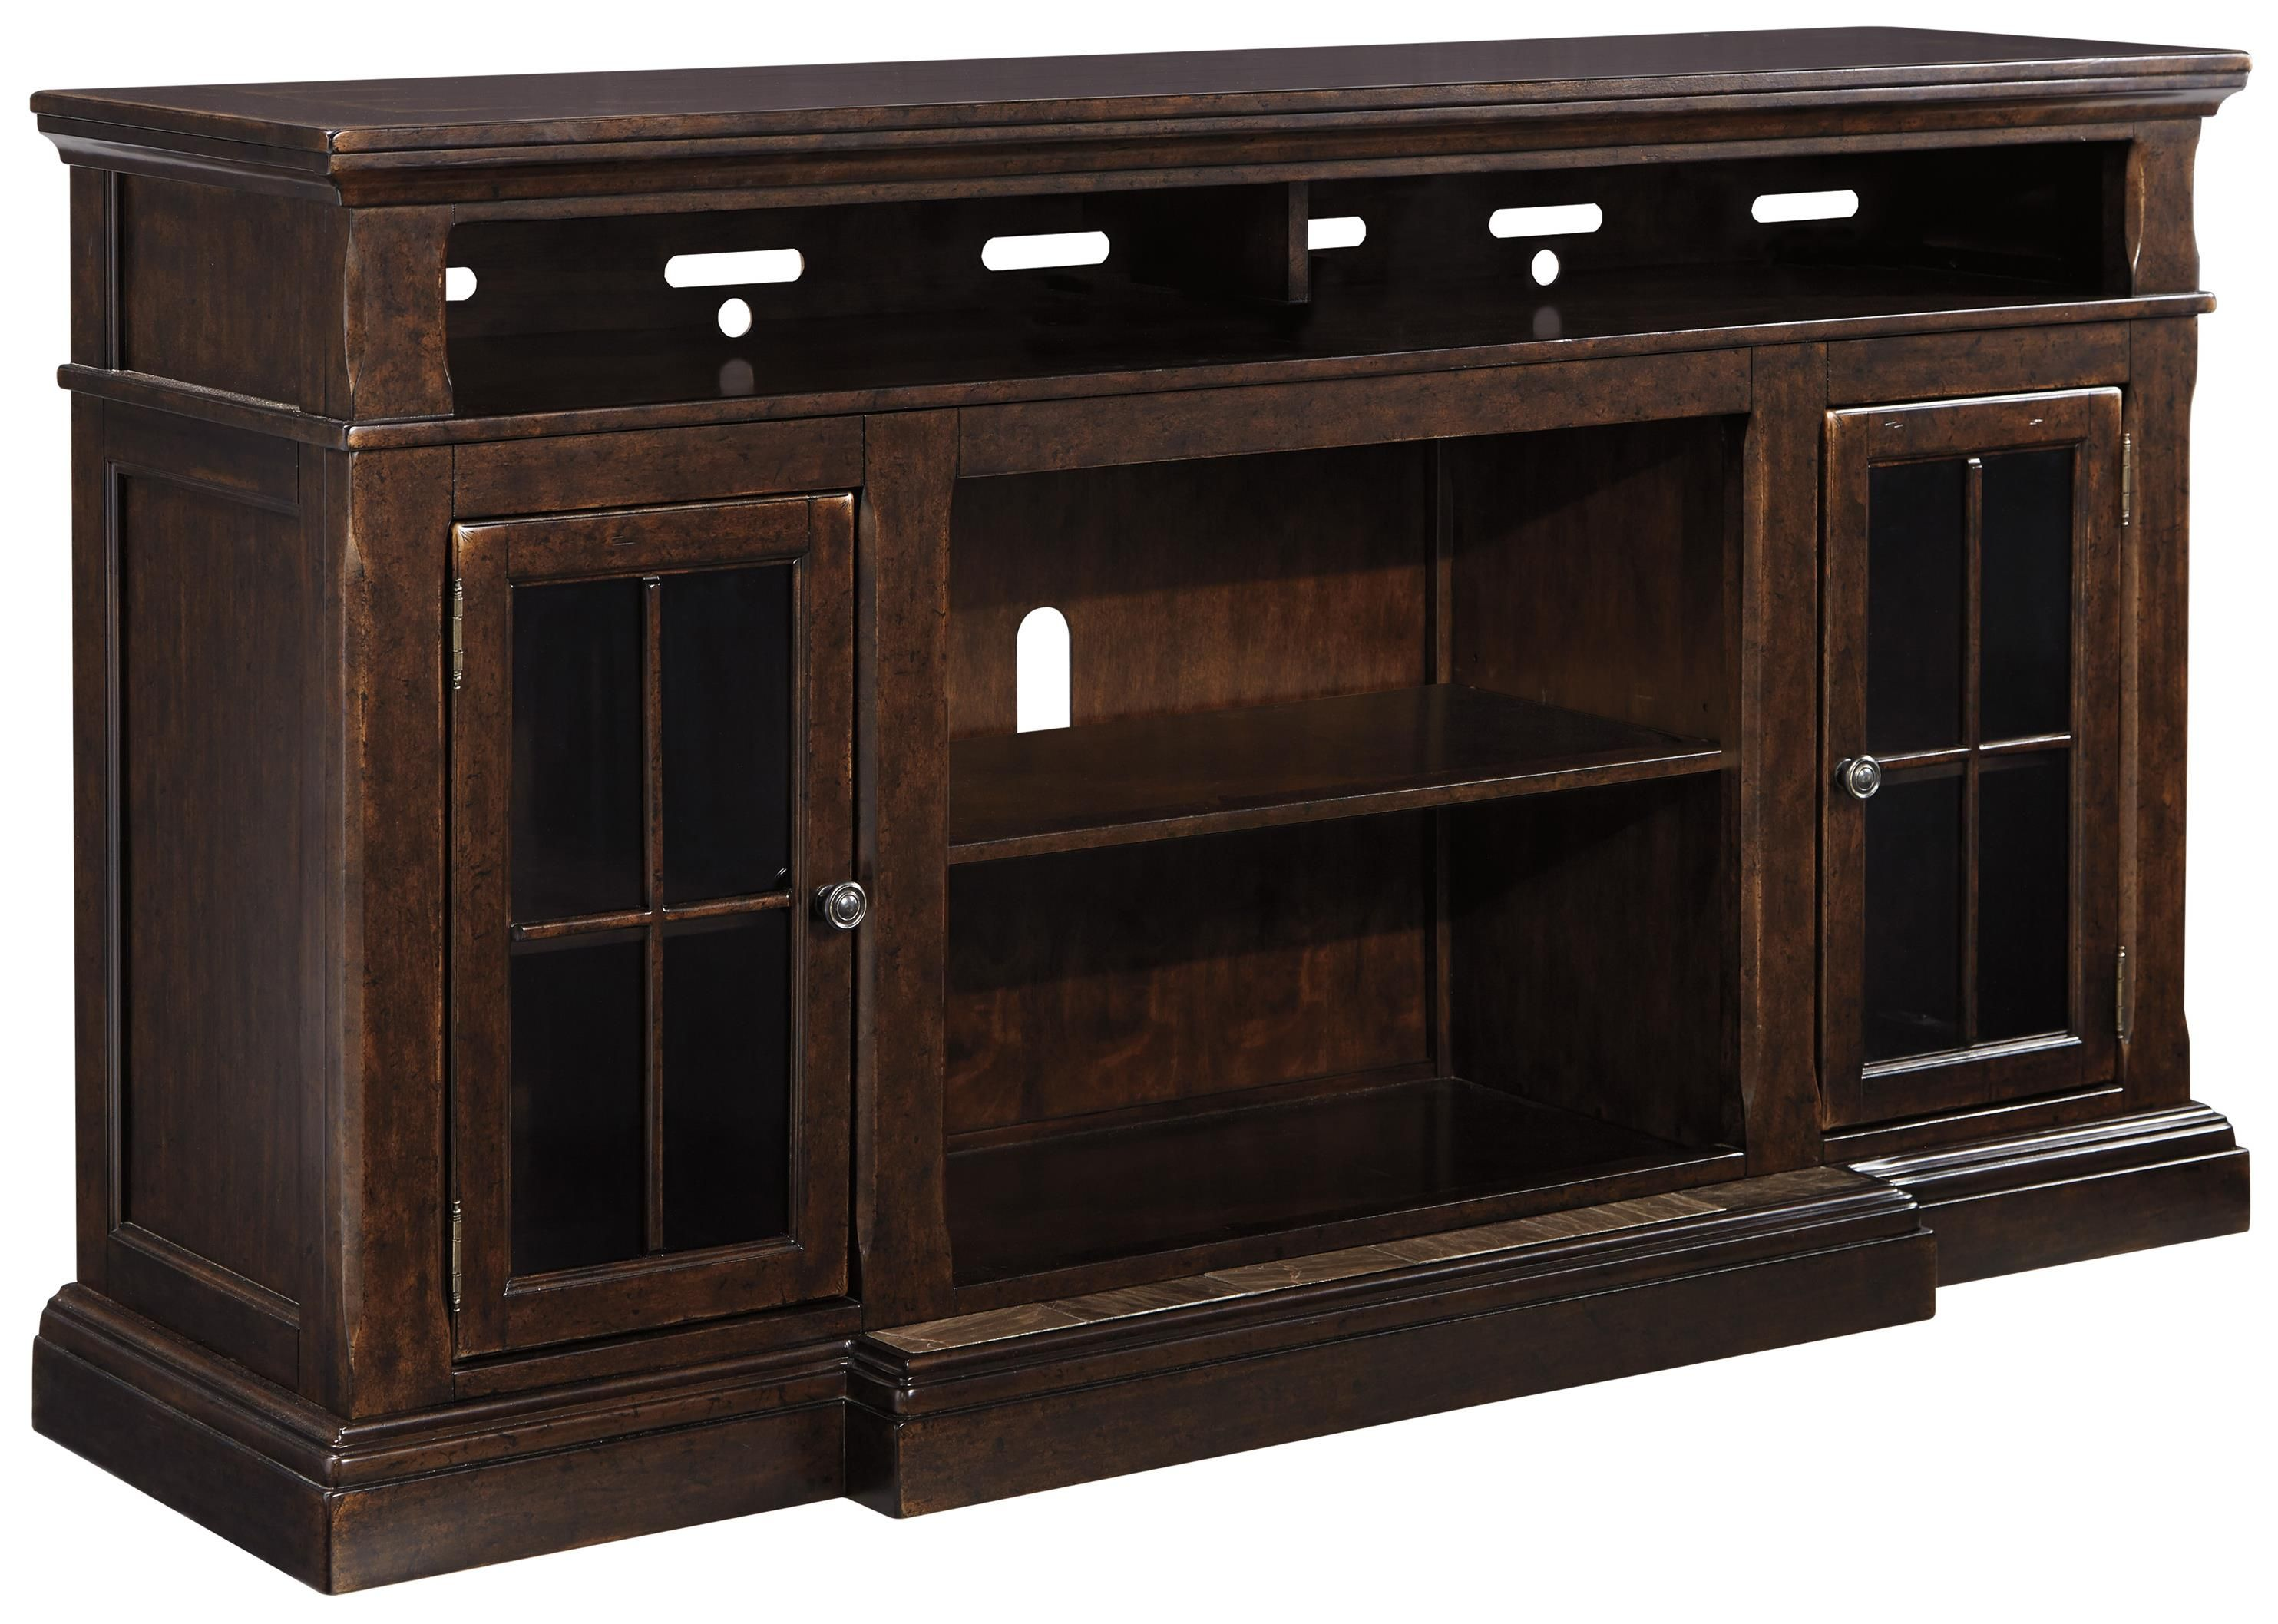 Roddinton Extra Large Tv Stand With Breakfront 2 Glass Doors By Signature Design By Ashley Large Tv Stands Fireplace Option Signature Design By Ashley